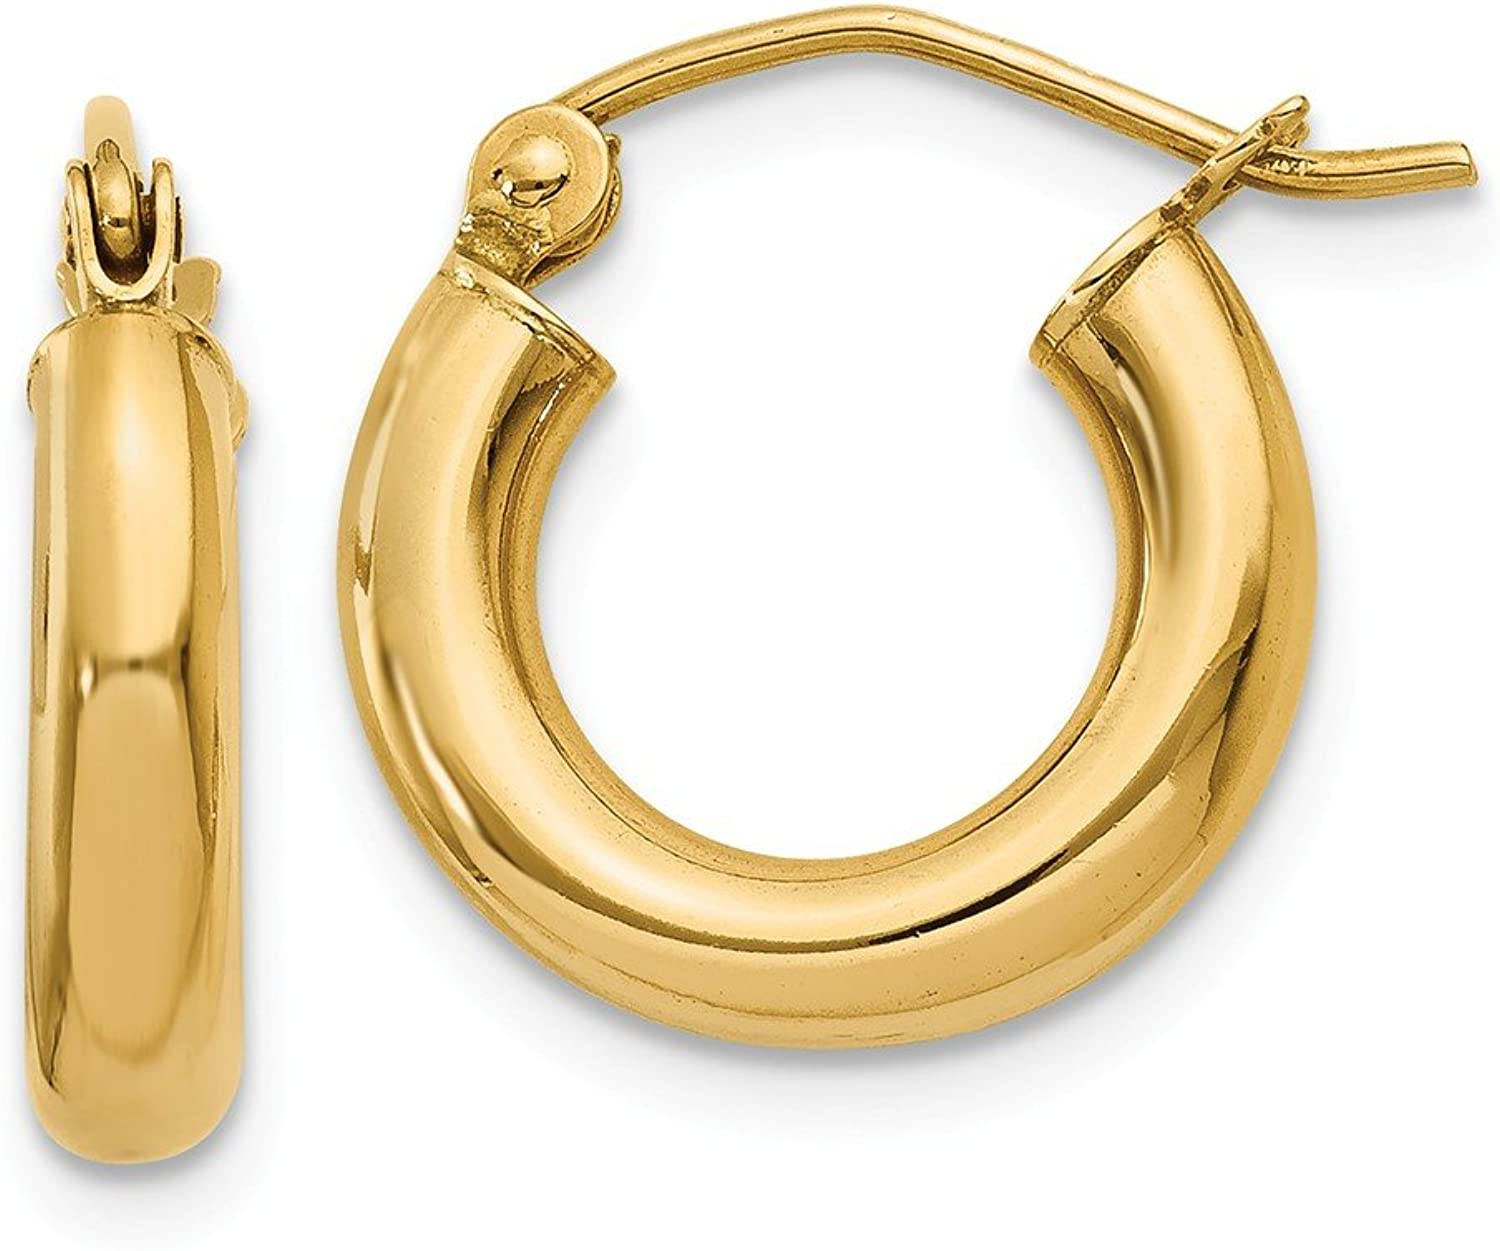 Yellowgold 14k Polished 3mm Lightweight Round Hoop Earrings